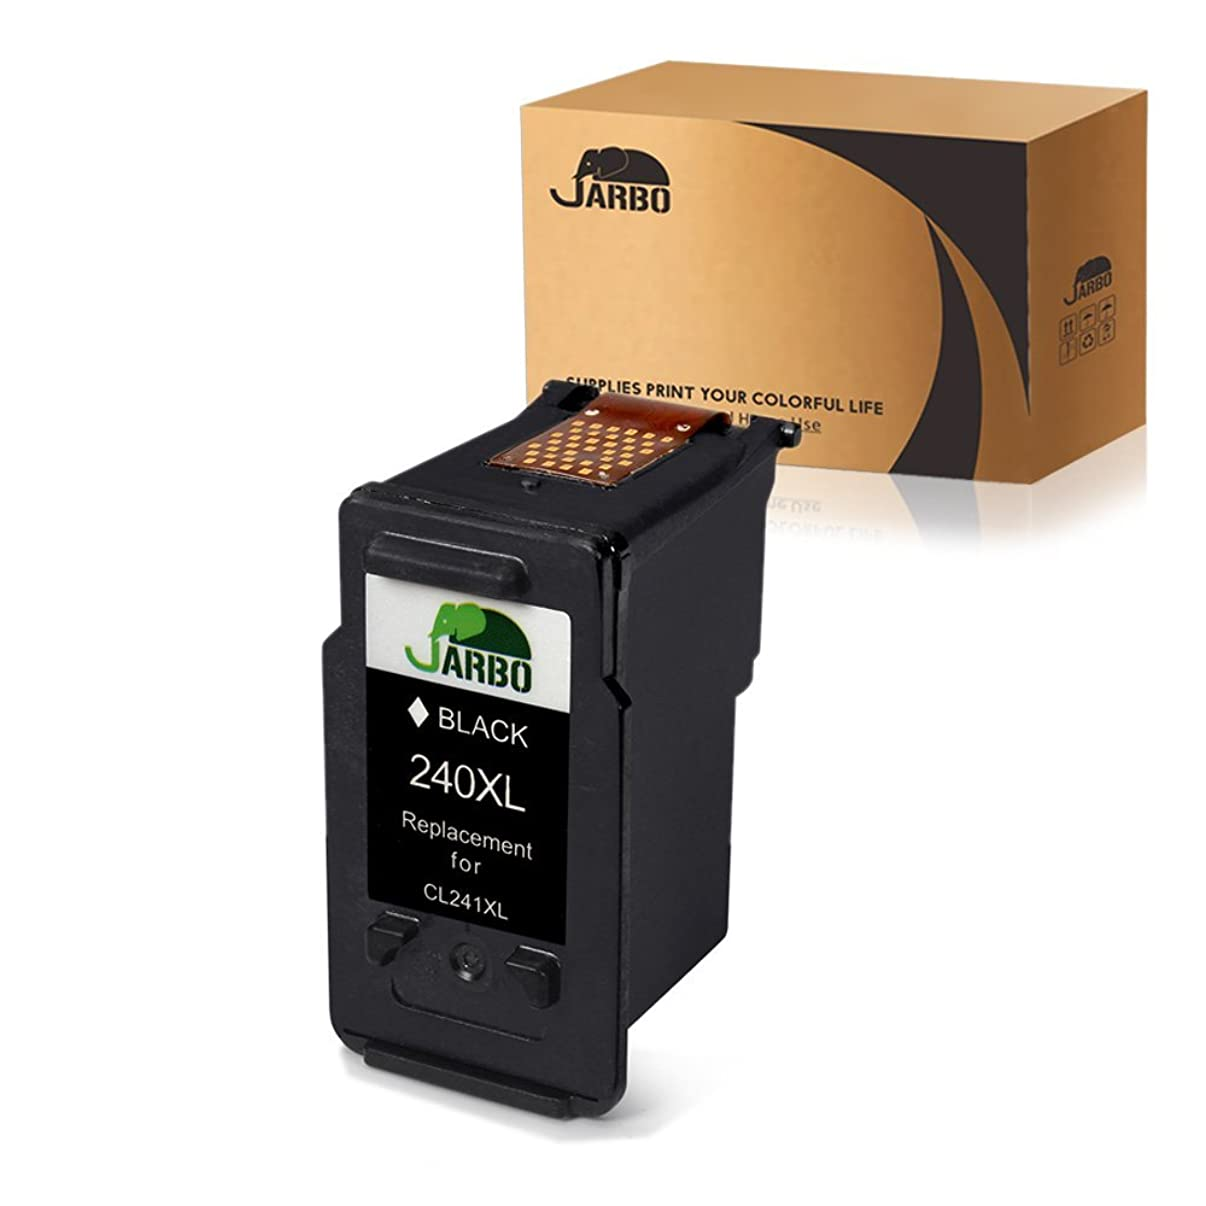 JARBO Remanufactured for Canon PG-240XL Canon 240 XL Black Ink Cartridge High Yield, 1 Pack, Use for Canon Pixma MX472 MX452 MX532 MX432 MX512 MG3620 MG3522 MG2120 MG2220 MG3120 MG3220 MG3520 TS5120